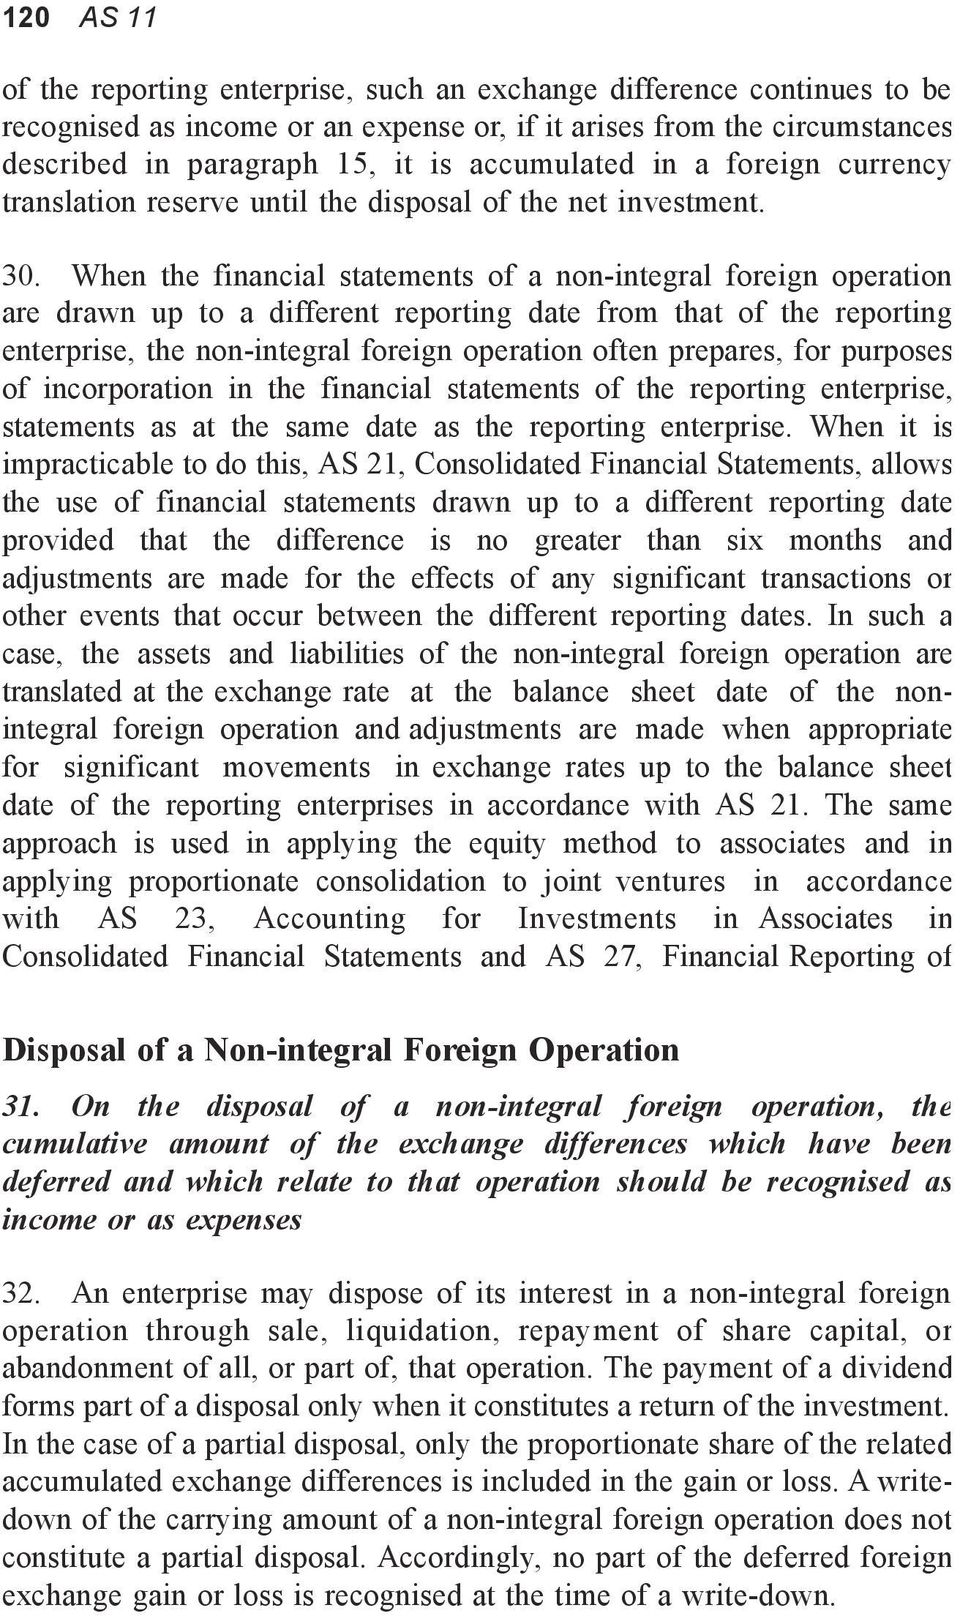 When the financial statements of a non-integral foreign operation are drawn up to a different reporting date from that of the reporting enterprise, the non-integral foreign operation often prepares,